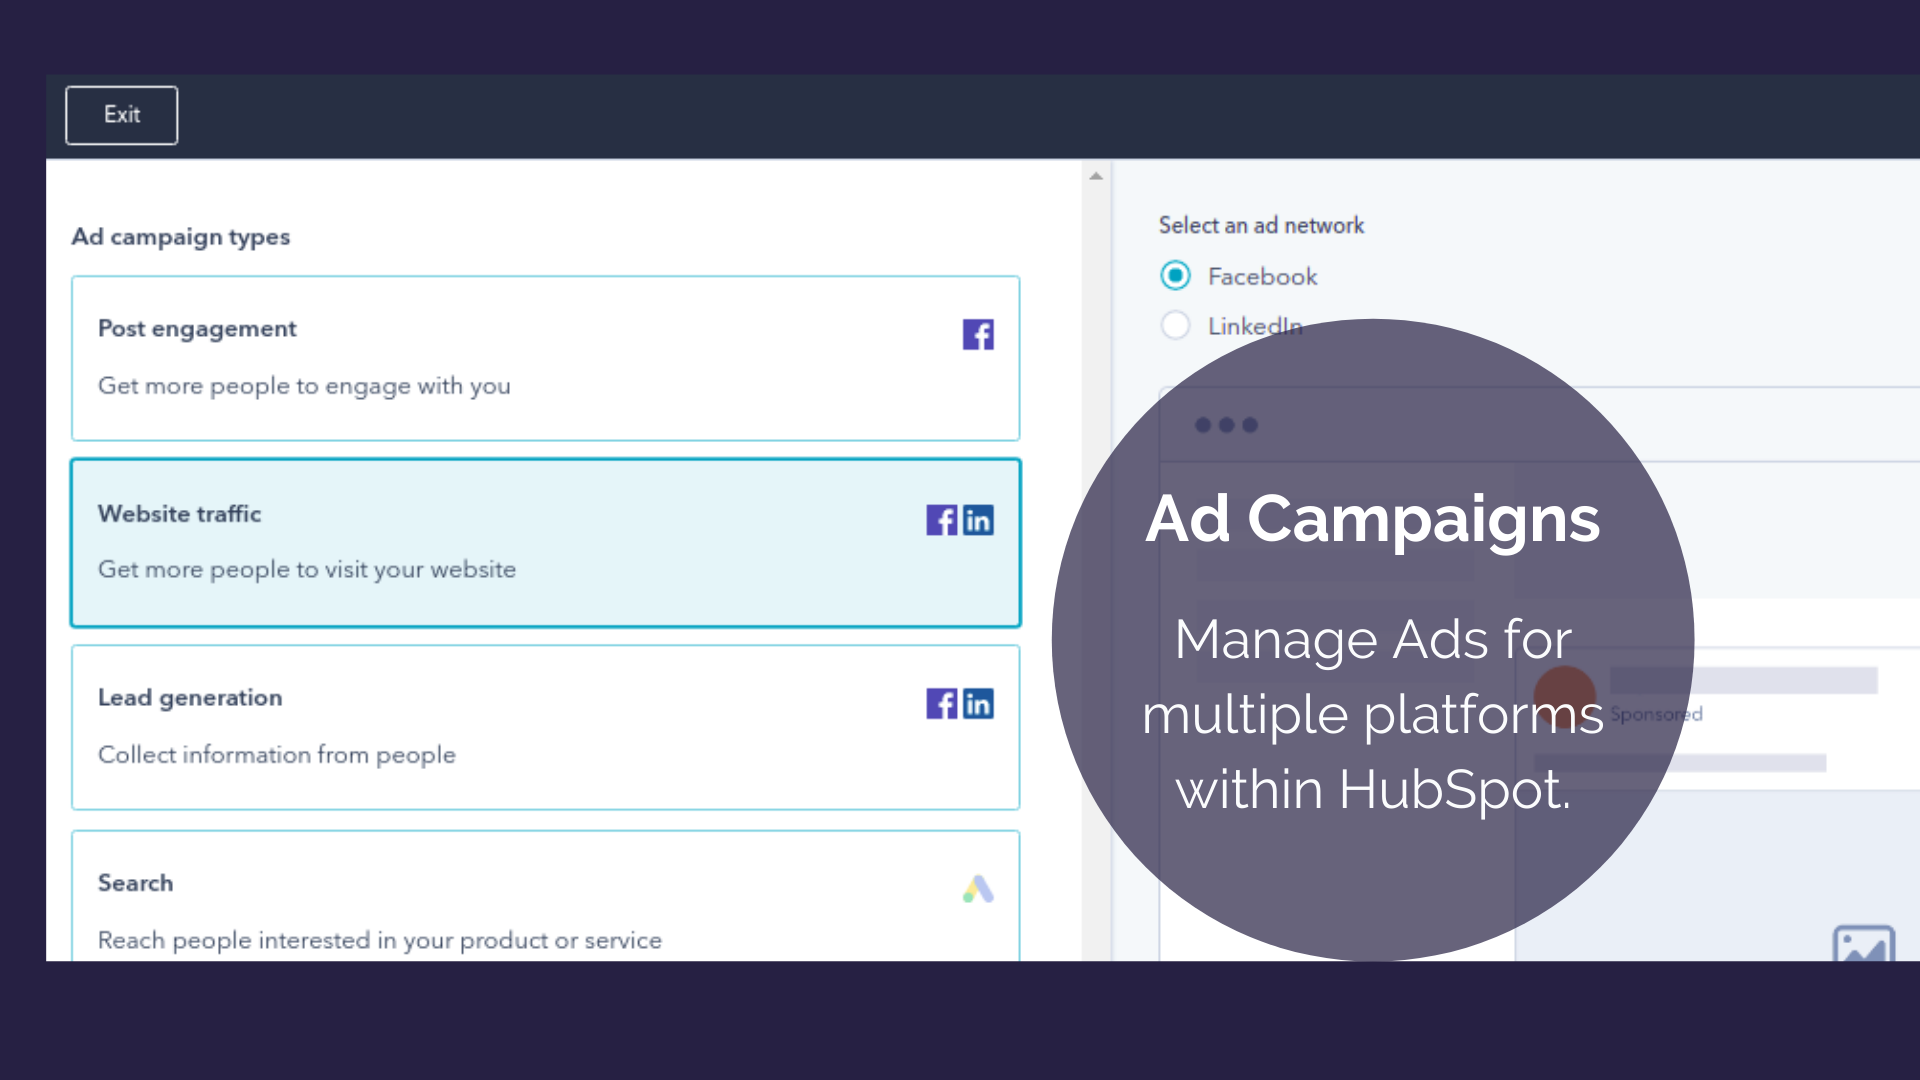 https://f.hubspotusercontent20.net/hubfs/2720327/Ad%20Campaigns-1.png